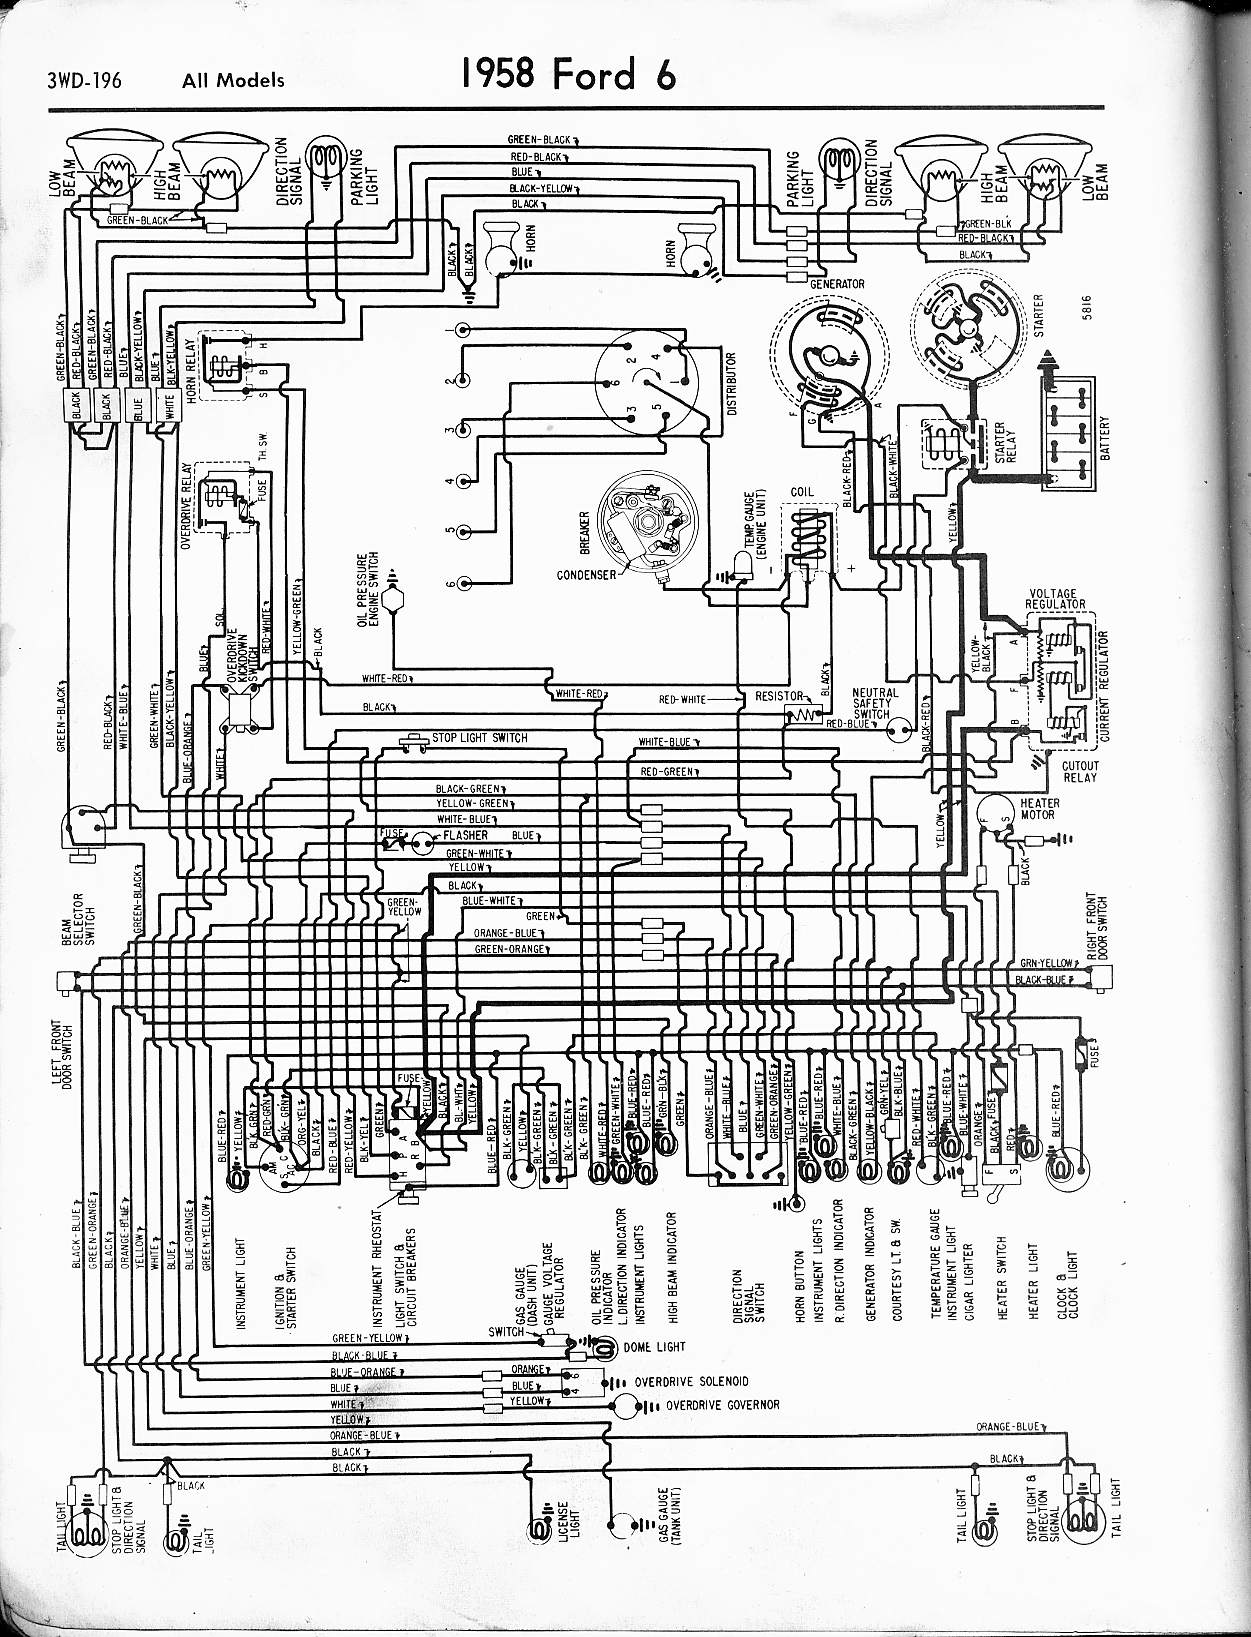 1965 Thunderbird Wiring Diagram Schematics Mustang Schematic 57 65 Ford Diagrams 1966